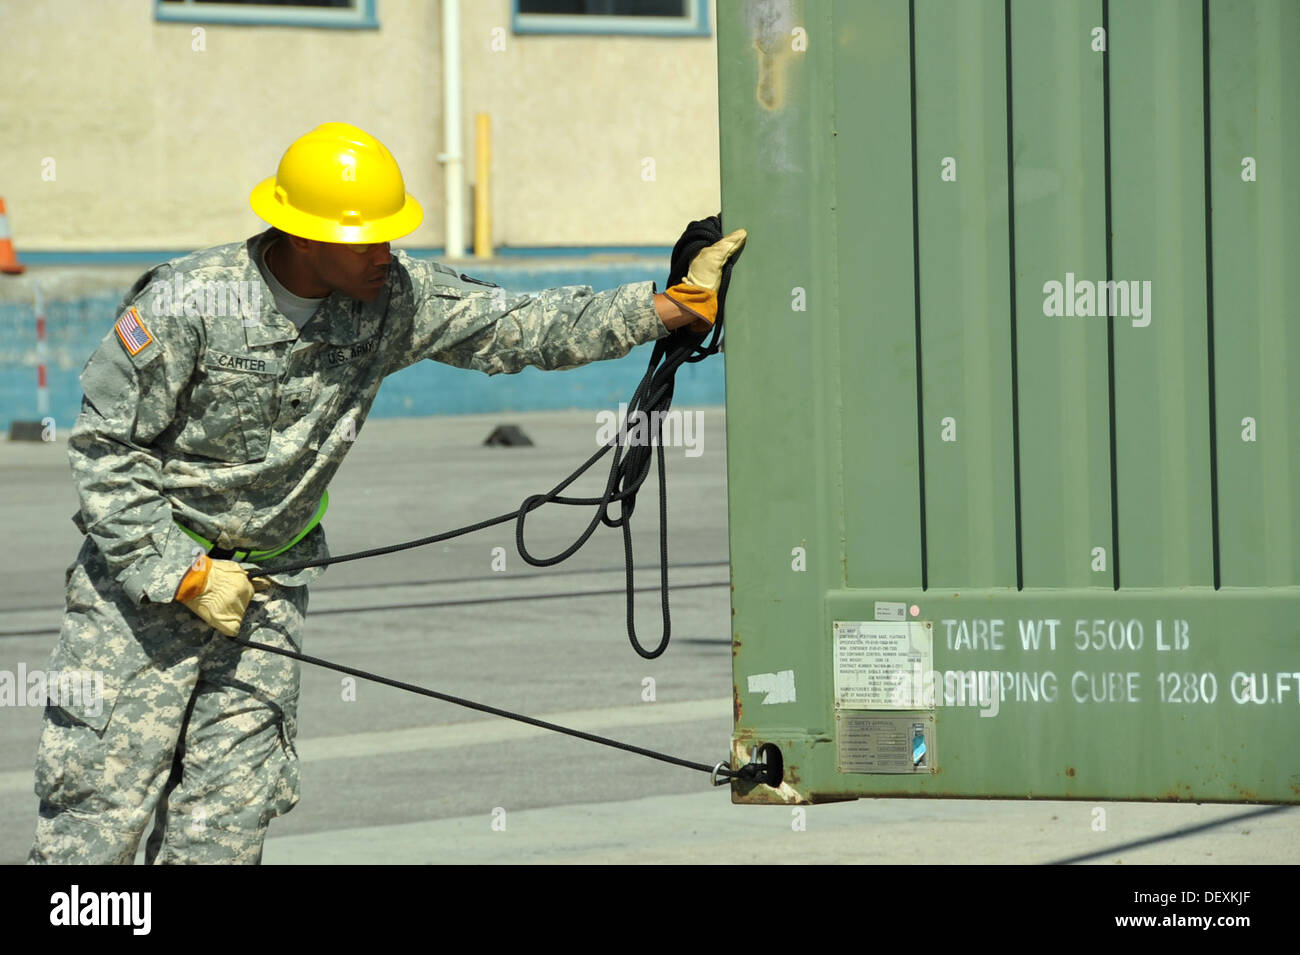 PORT HUENEME, Calif. – U.S. Army Reserve Spc. Niko Carter, a cargo specialist, 441st Transportation Company (Seaport Stock Photo